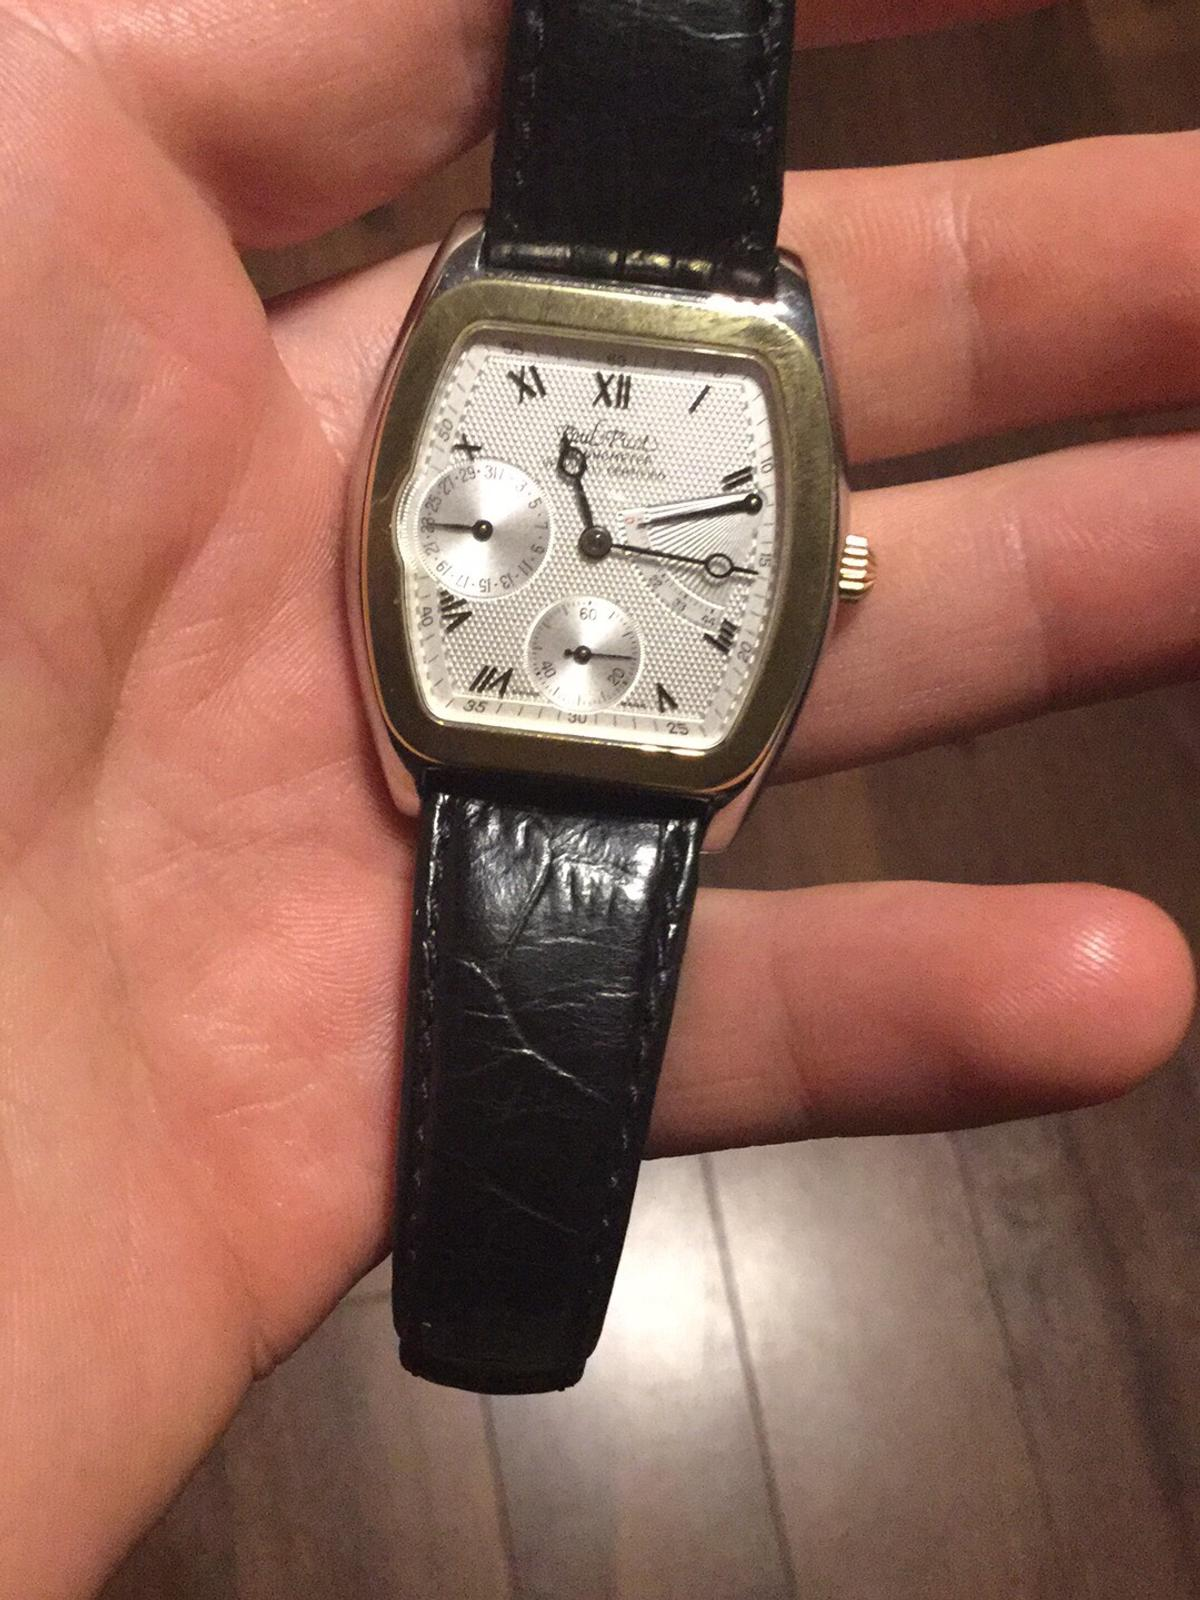 Paul Picot Watch Very rare and collectible watch in-hours movement automatic from Cartier keep perfect time fully serviced from Paul Picot factory 🏭 few weeks ago Got bax original certificate from 1999 18ct gold bezel and crown 👑 L edition to 99 pics every made Please not time waster viewing is welcome